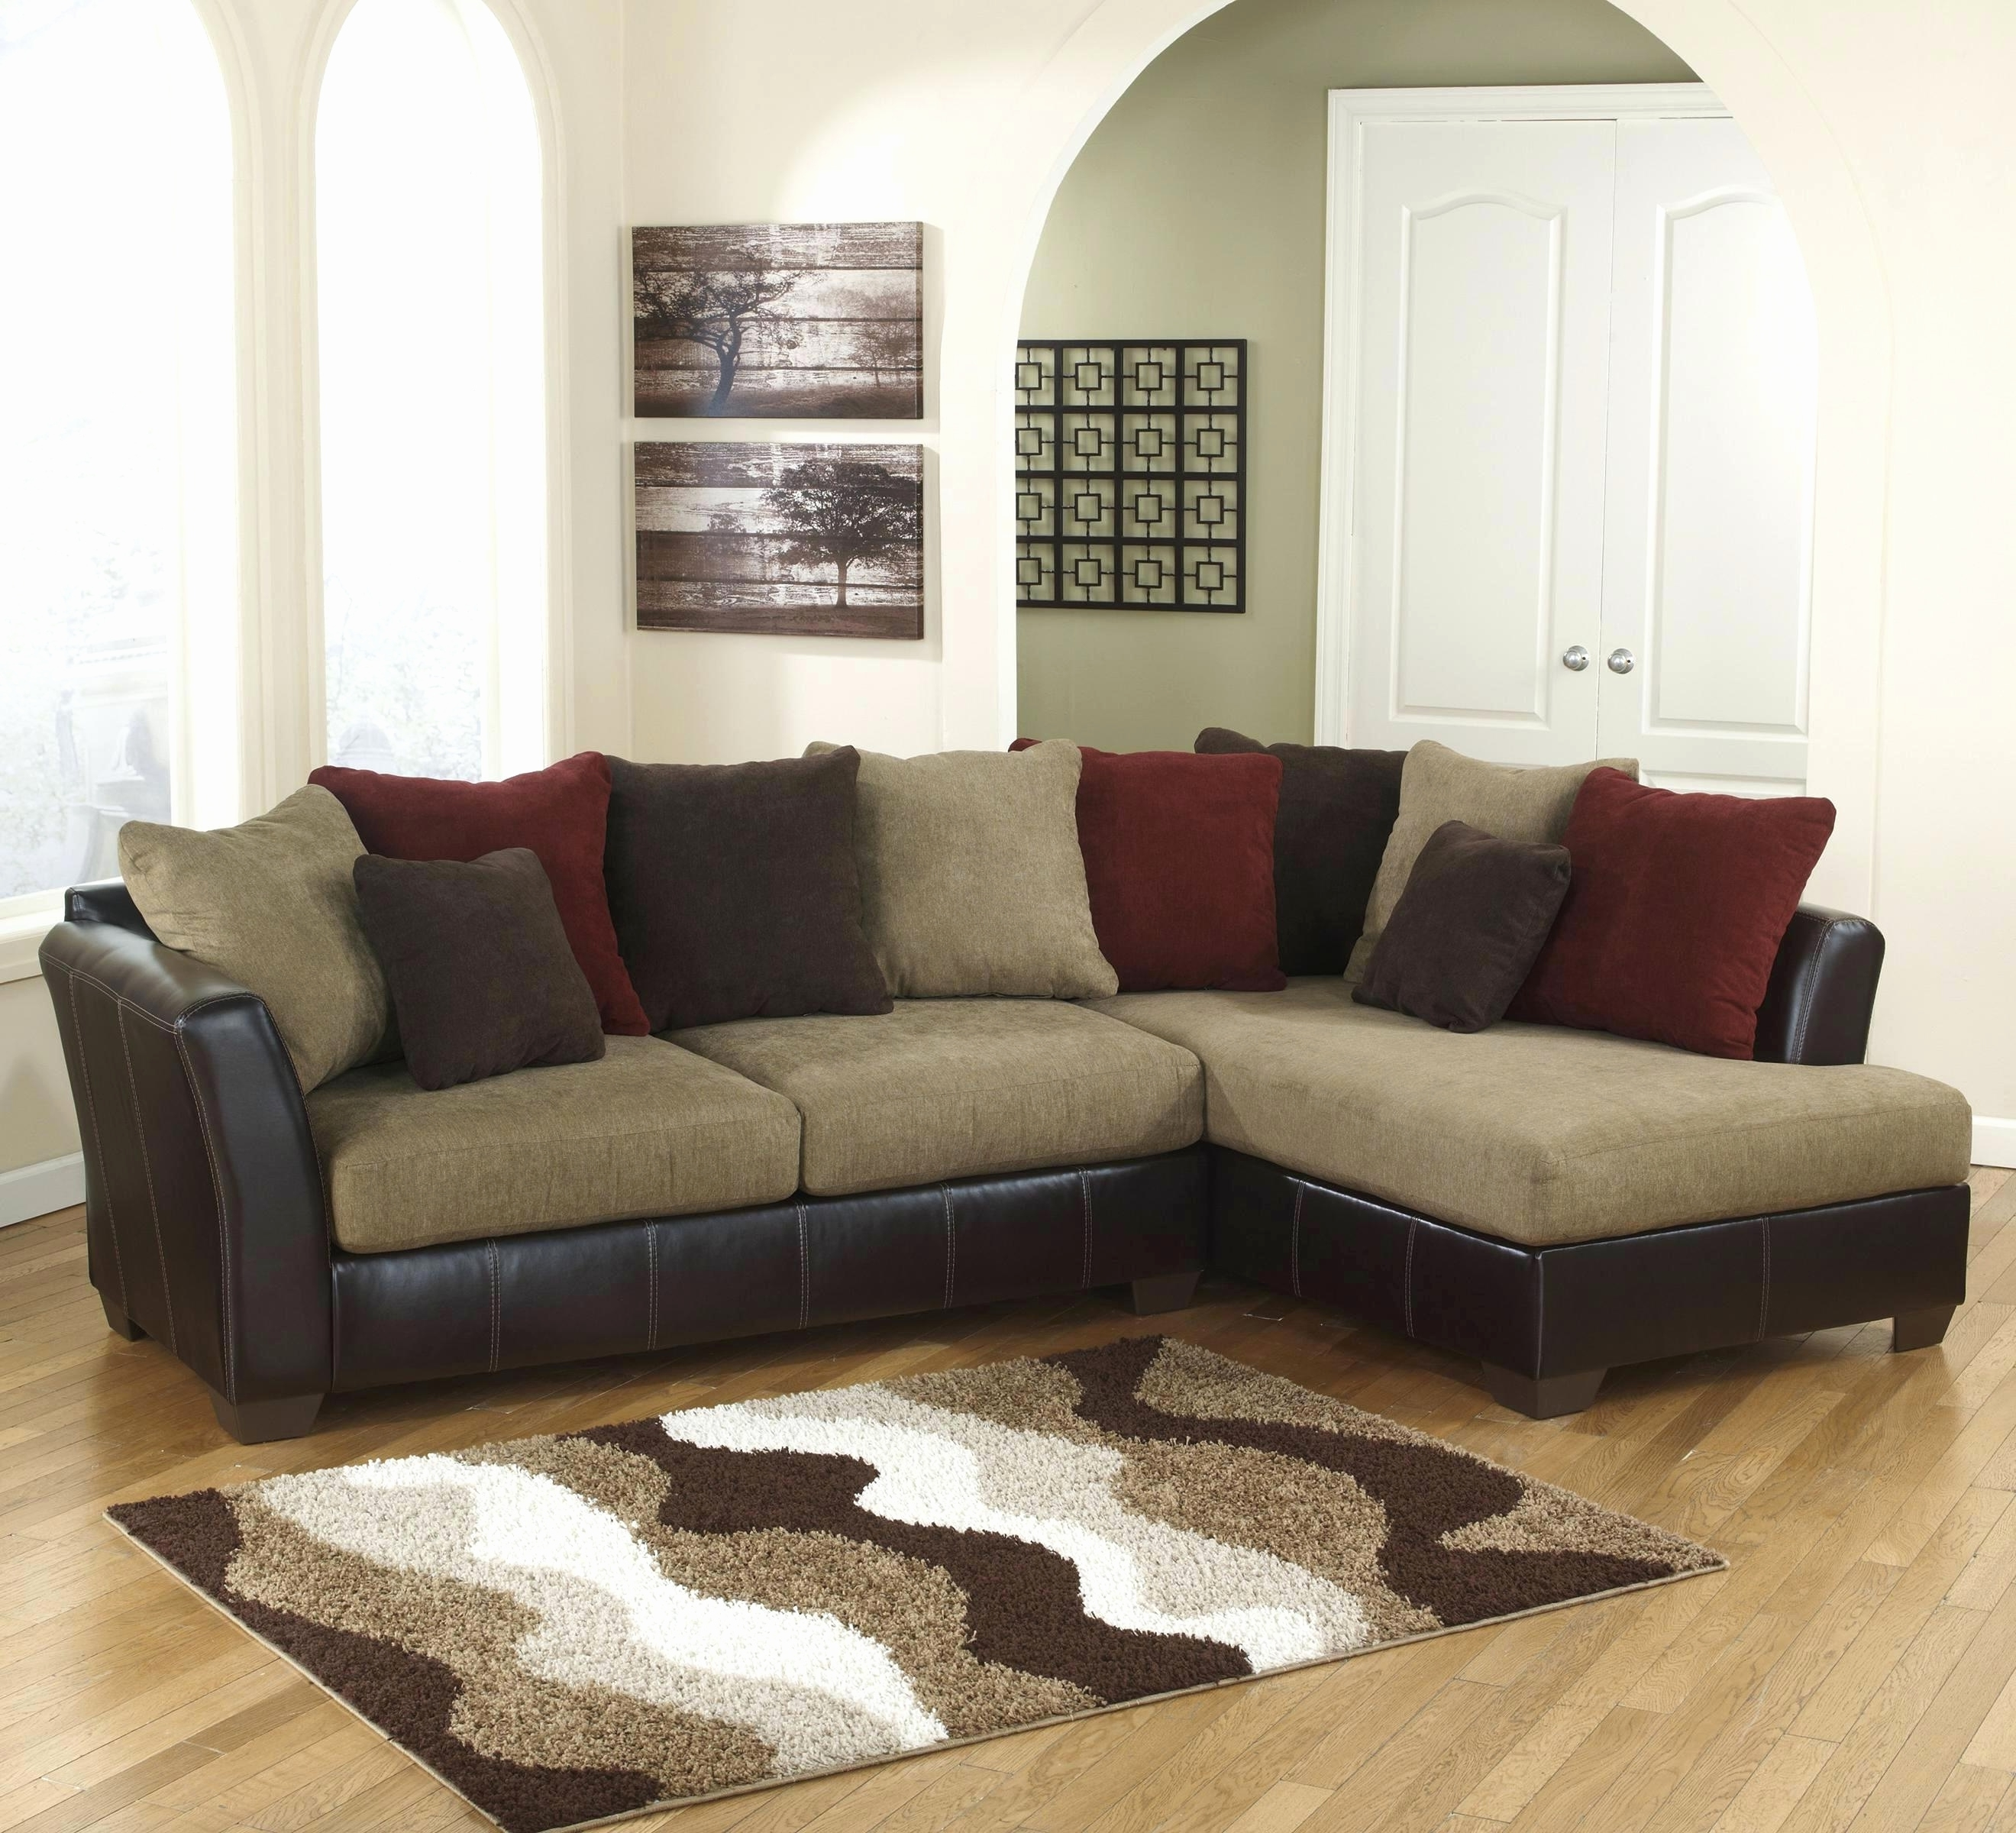 Sectional Sofas At Ashley With Most Up To Date Furniture : New Ashley Furniture Sectional Sofas 2018 E (View 8 of 20)